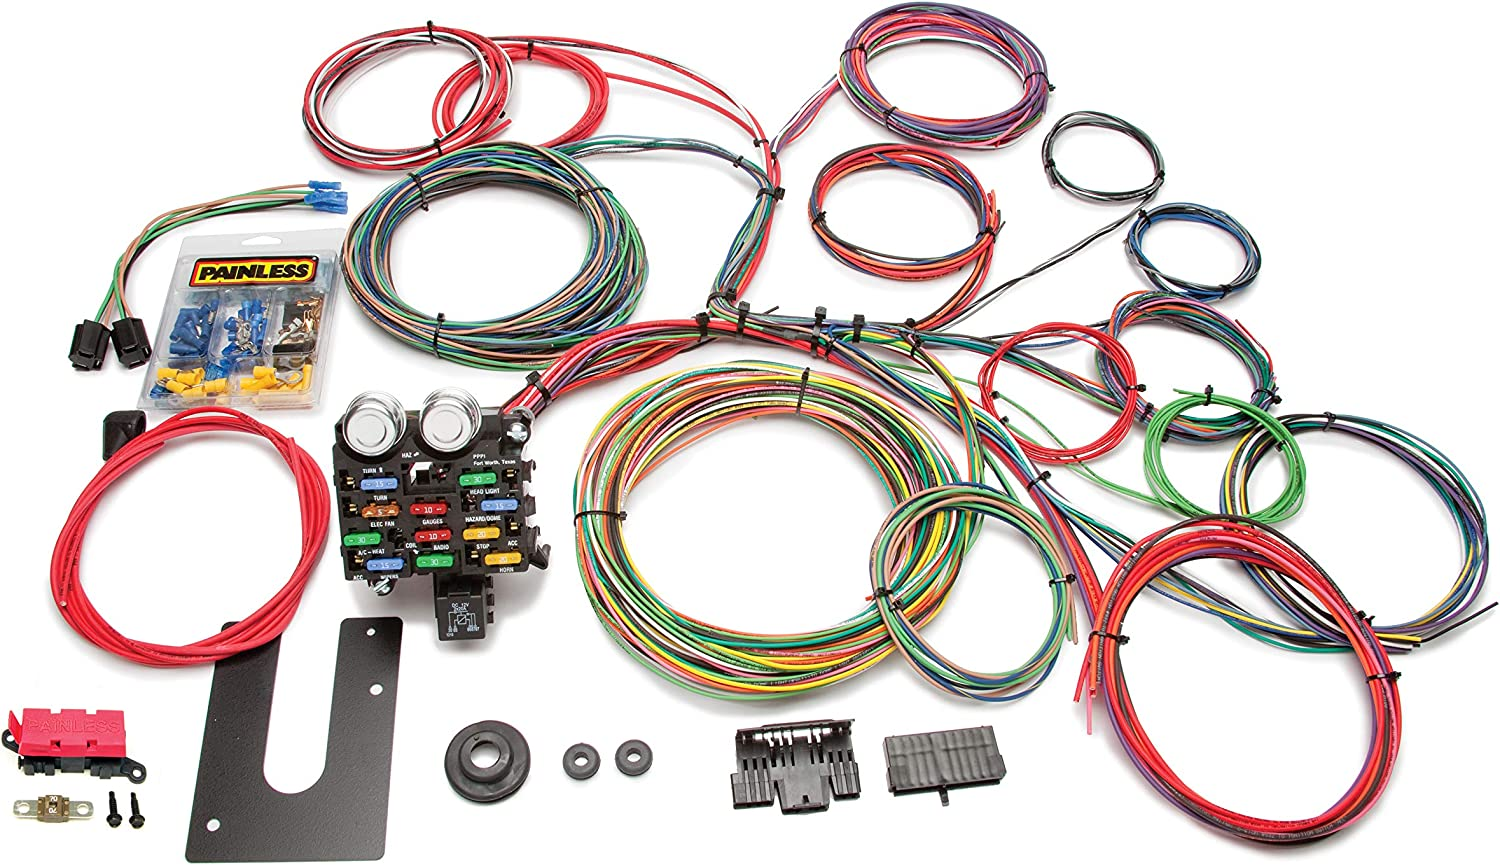 [ZSVE_7041]  Amazon.com: Painless Performance 10102 Classic Customizable Chassis Harness,  Key in Dash, 21 Circuits: Automotive | 1984 Camaro Painless Wiring Harness |  | Amazon.com